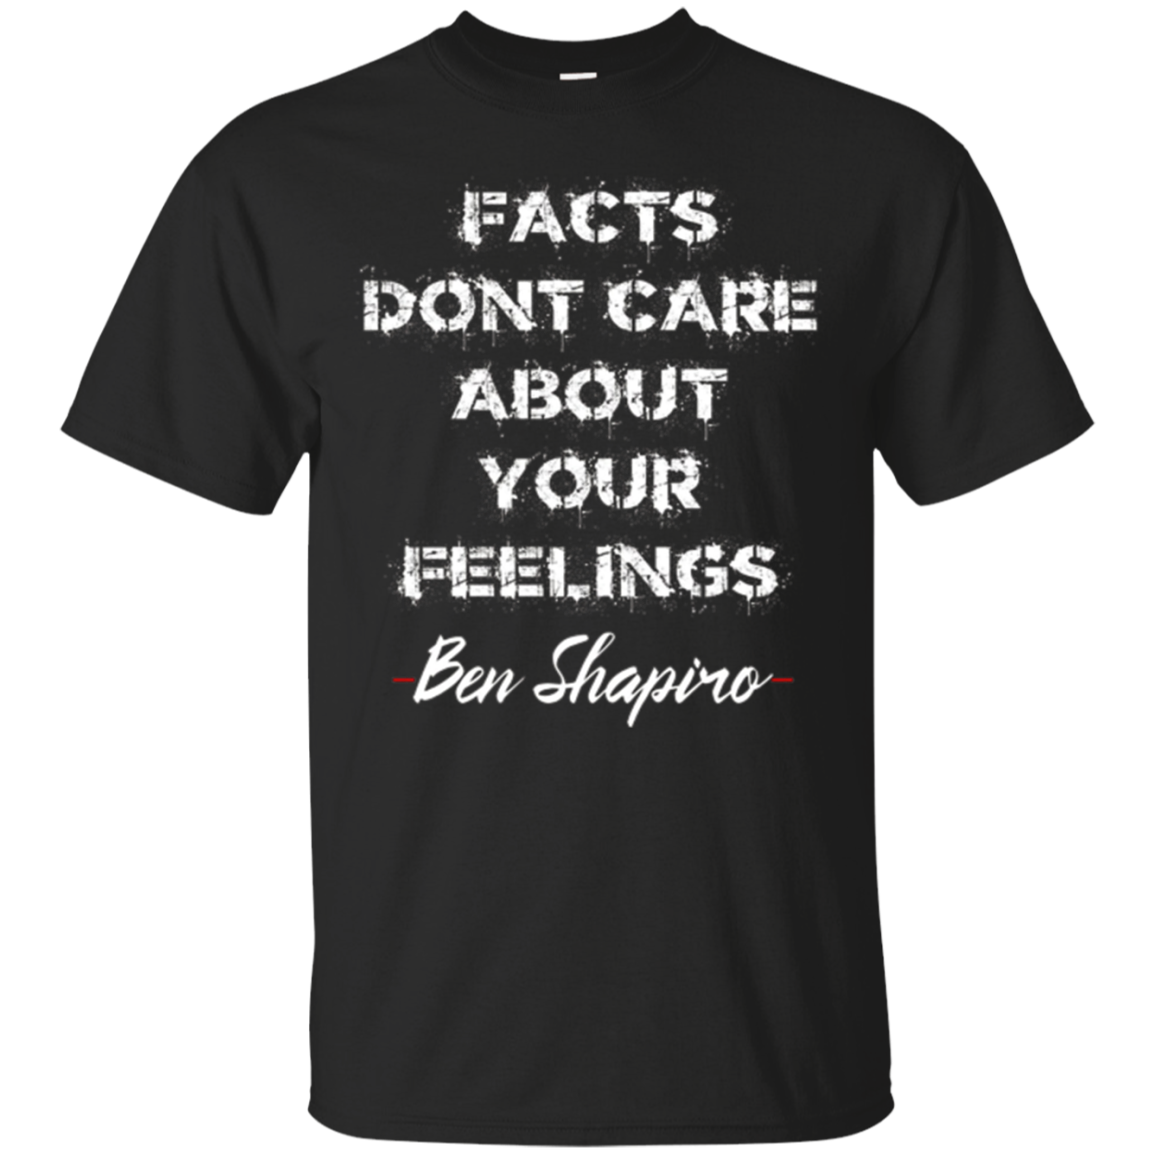 Facts dont care about your Feelings shirt, Ben Shapiro Shirt